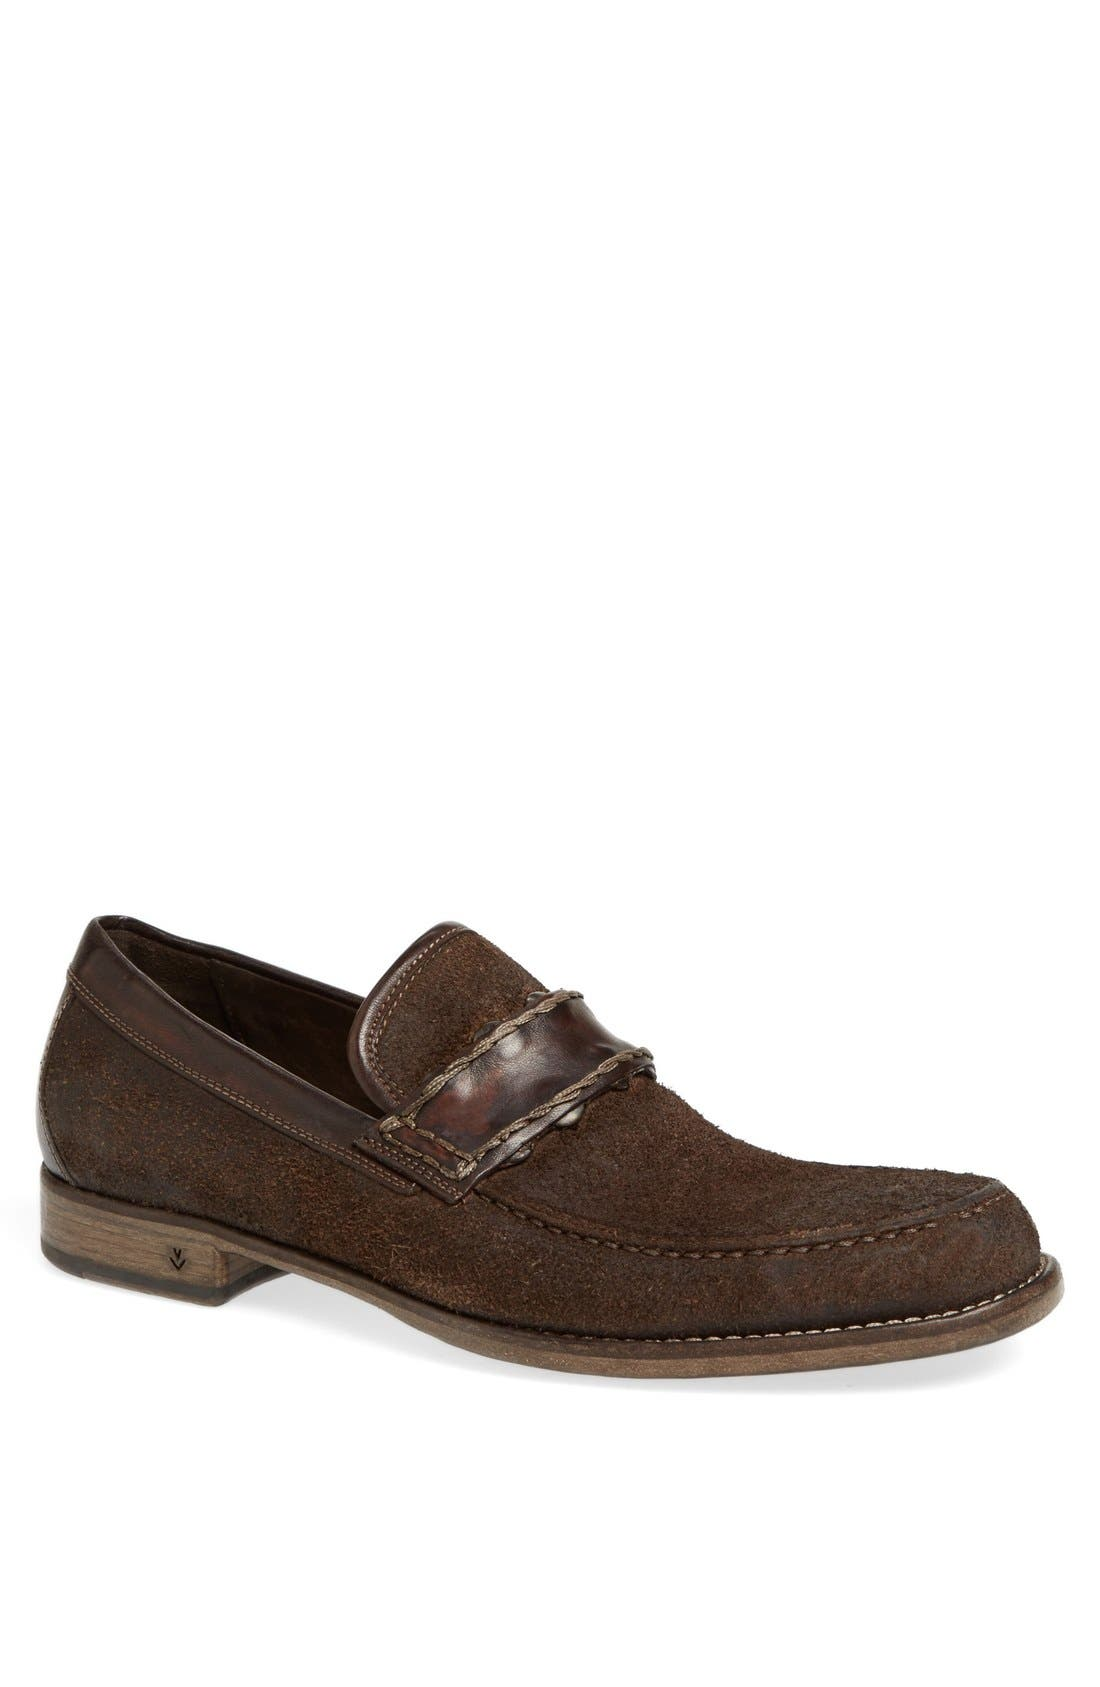 Alternate Image 1 Selected - John Varvatos Collection 'Ludwig Signature' Penny Loafer